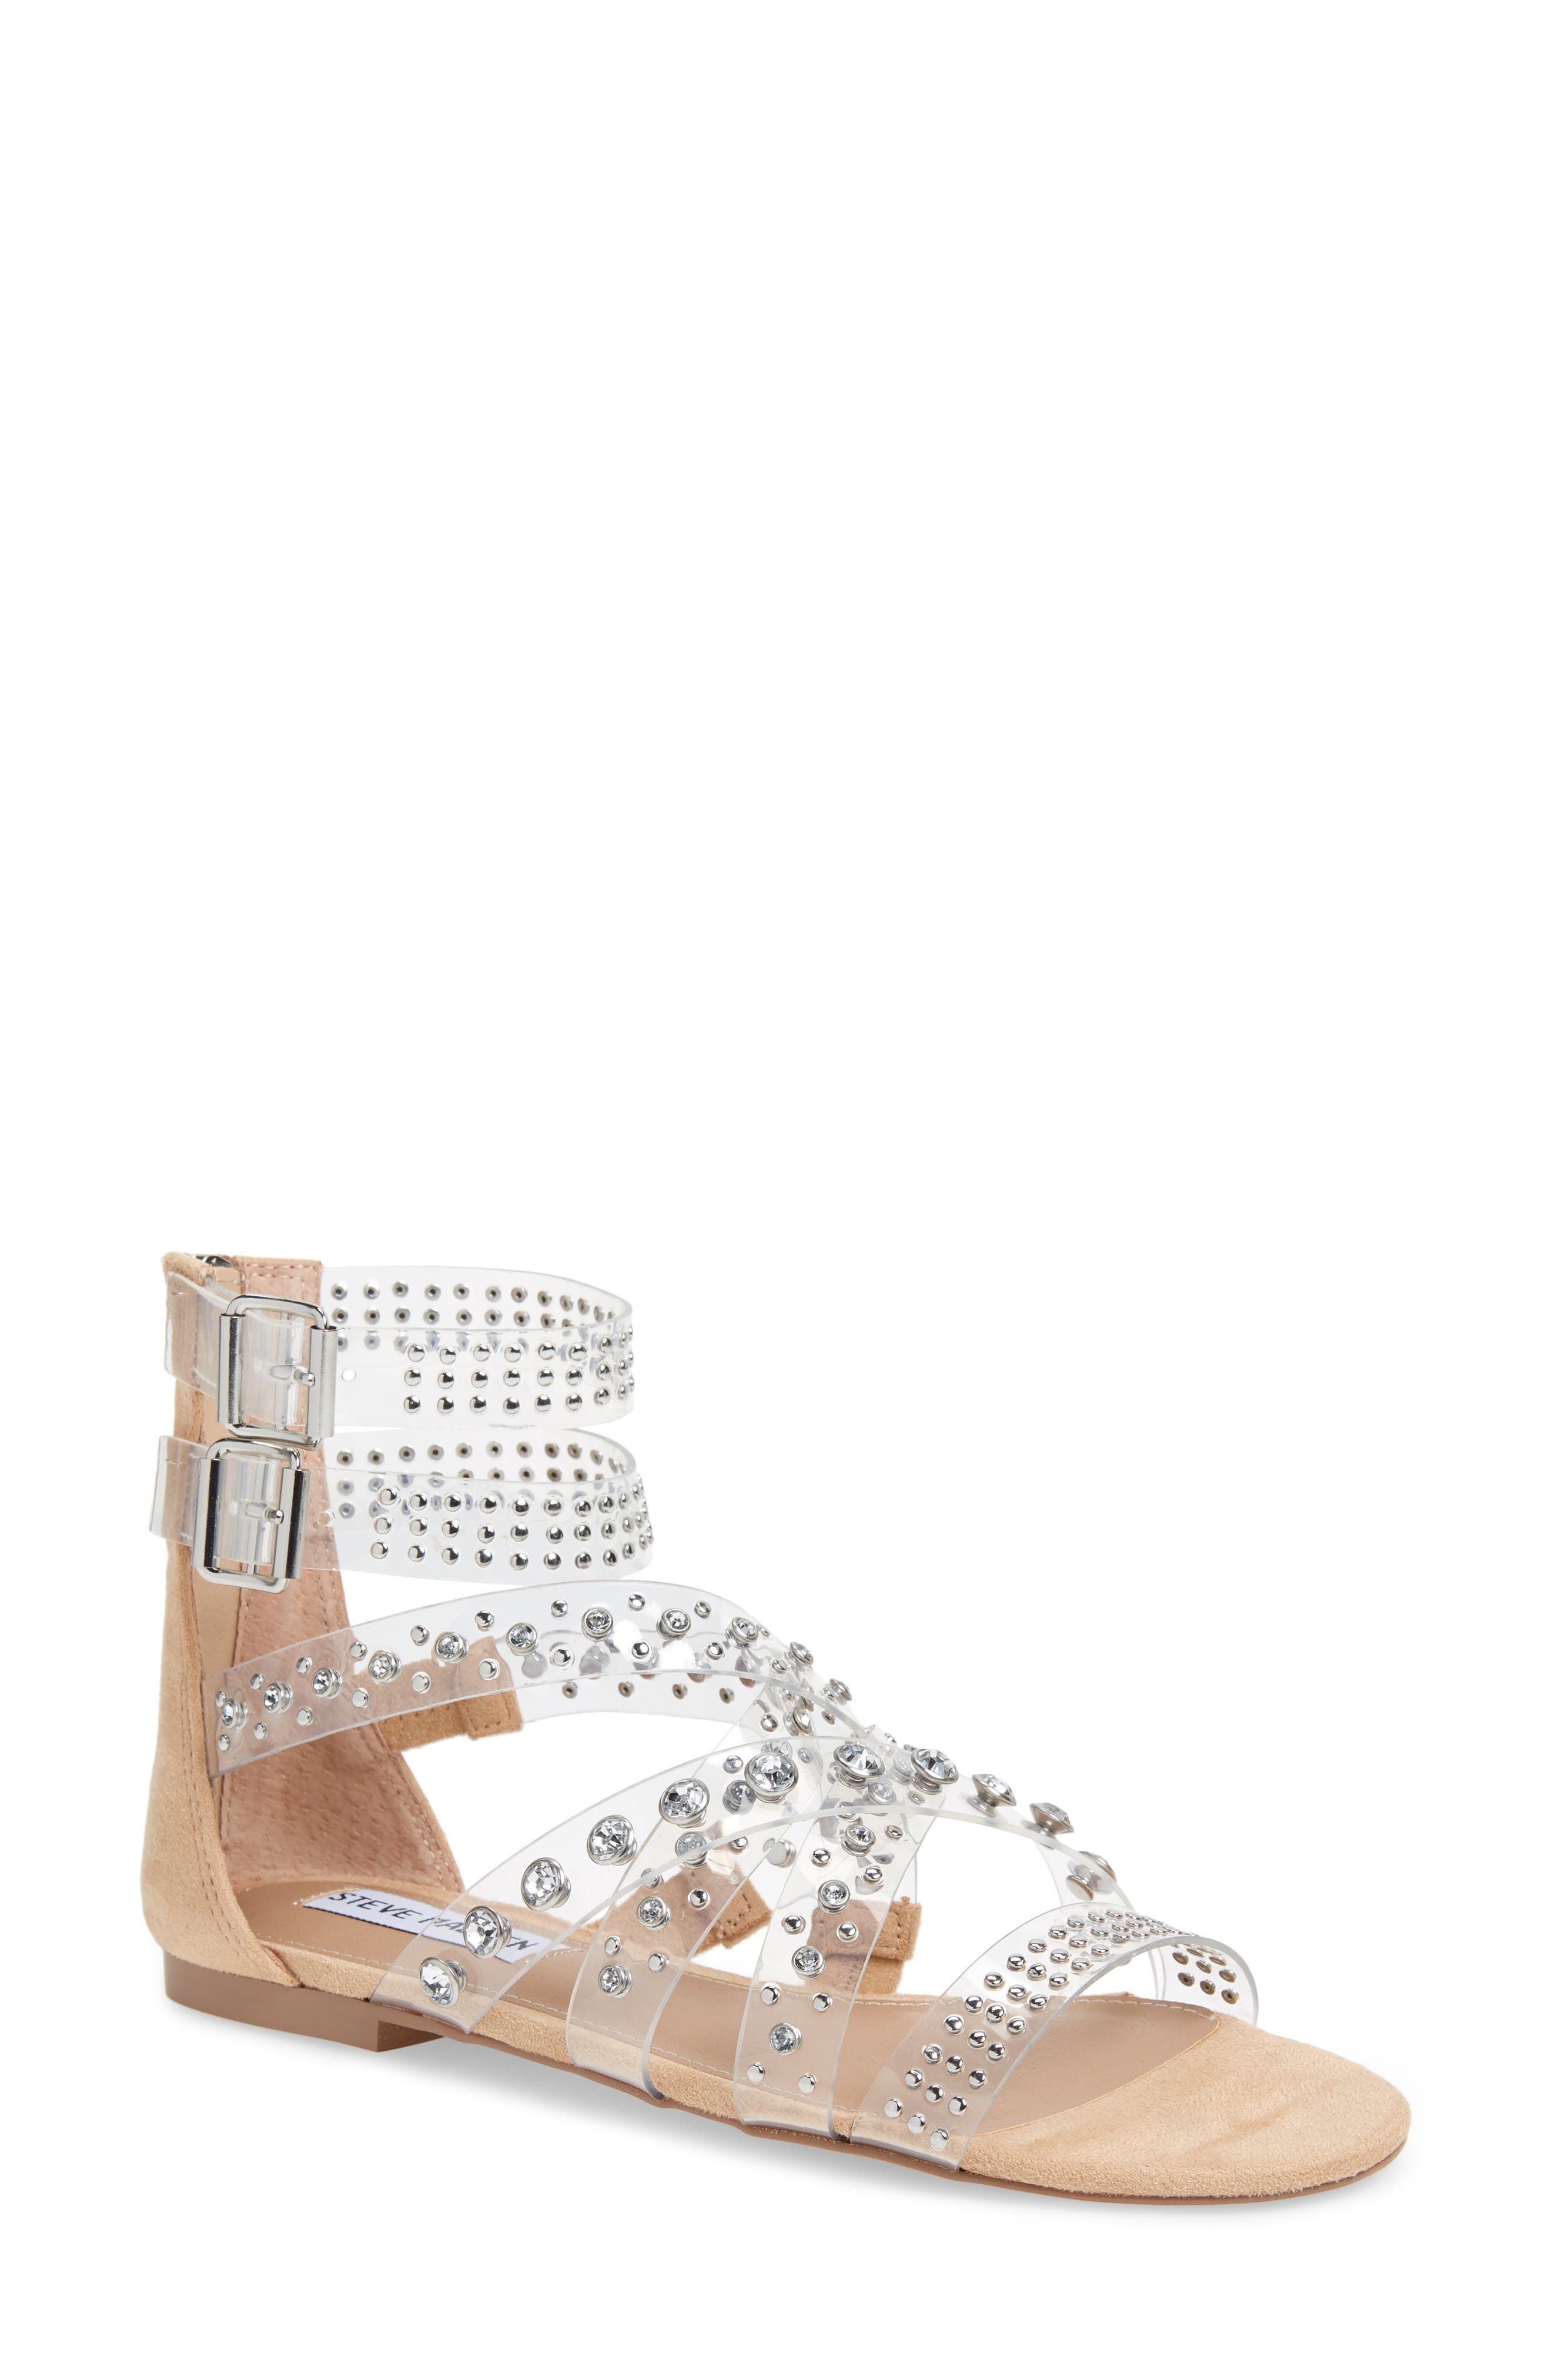 Shift Embellished Gladiator Sandal,                             Main thumbnail 1, color,                             Clear